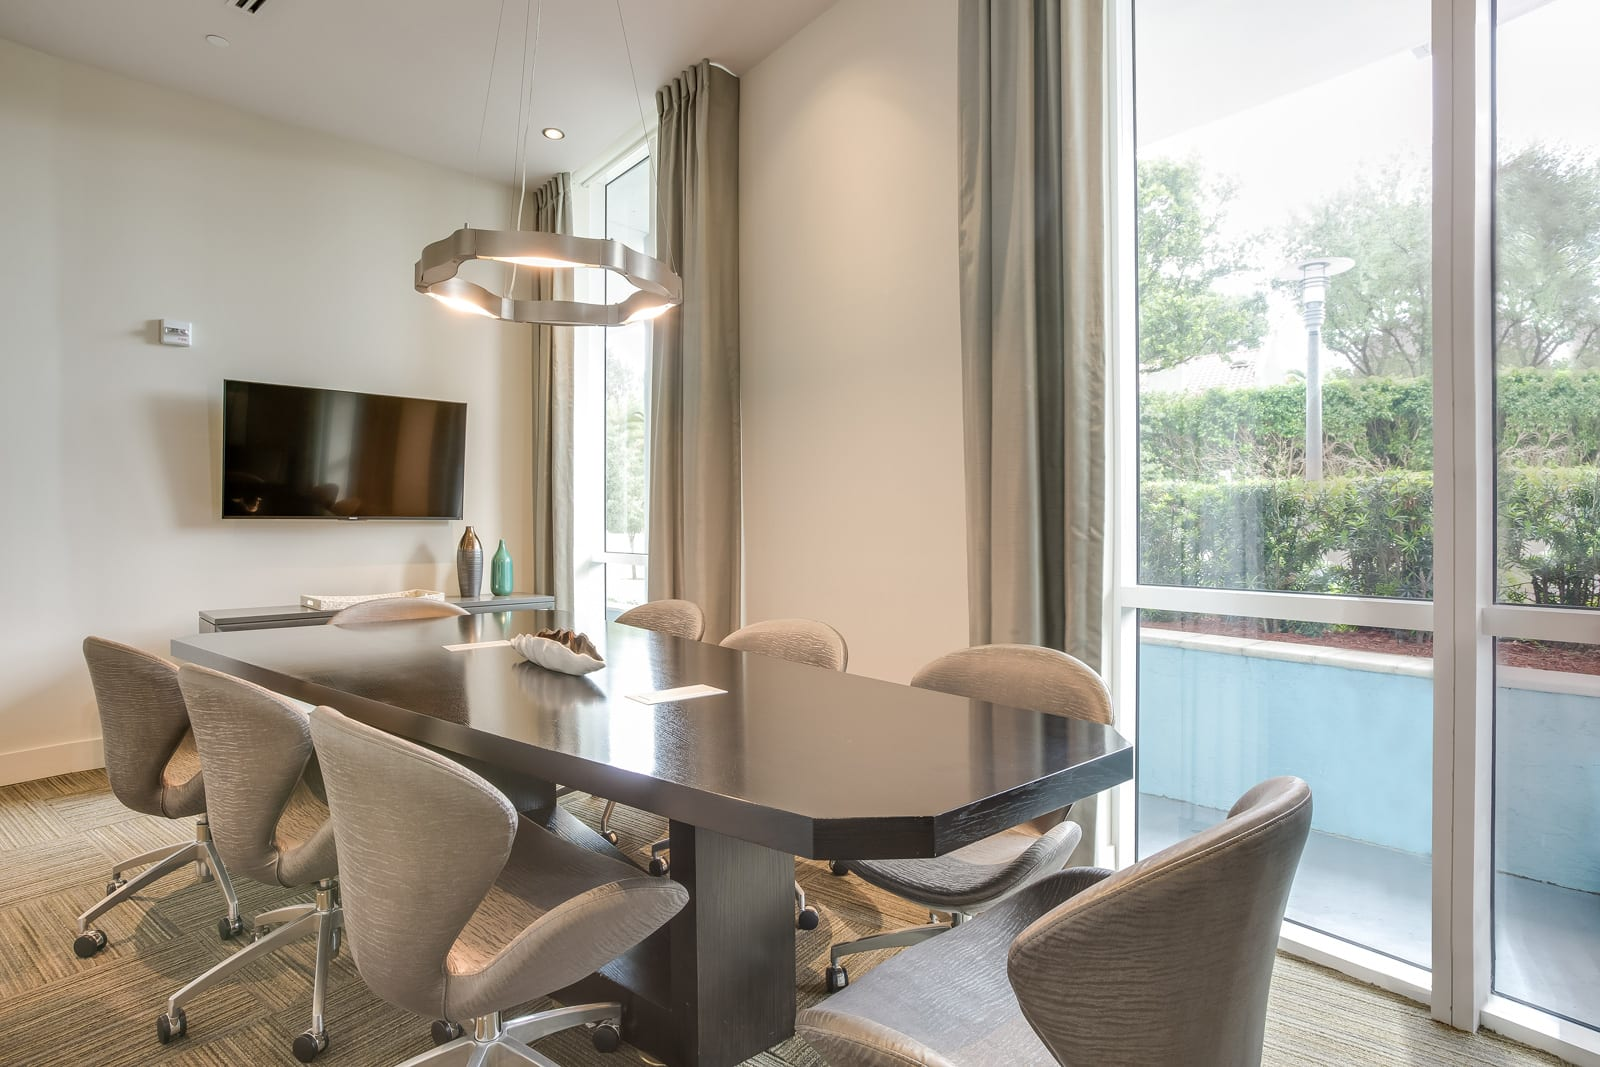 Executive Conference Room at Amaray Las Olas by Windsor Apartments, 215 SE 8th Ave, Fort Lauderdale